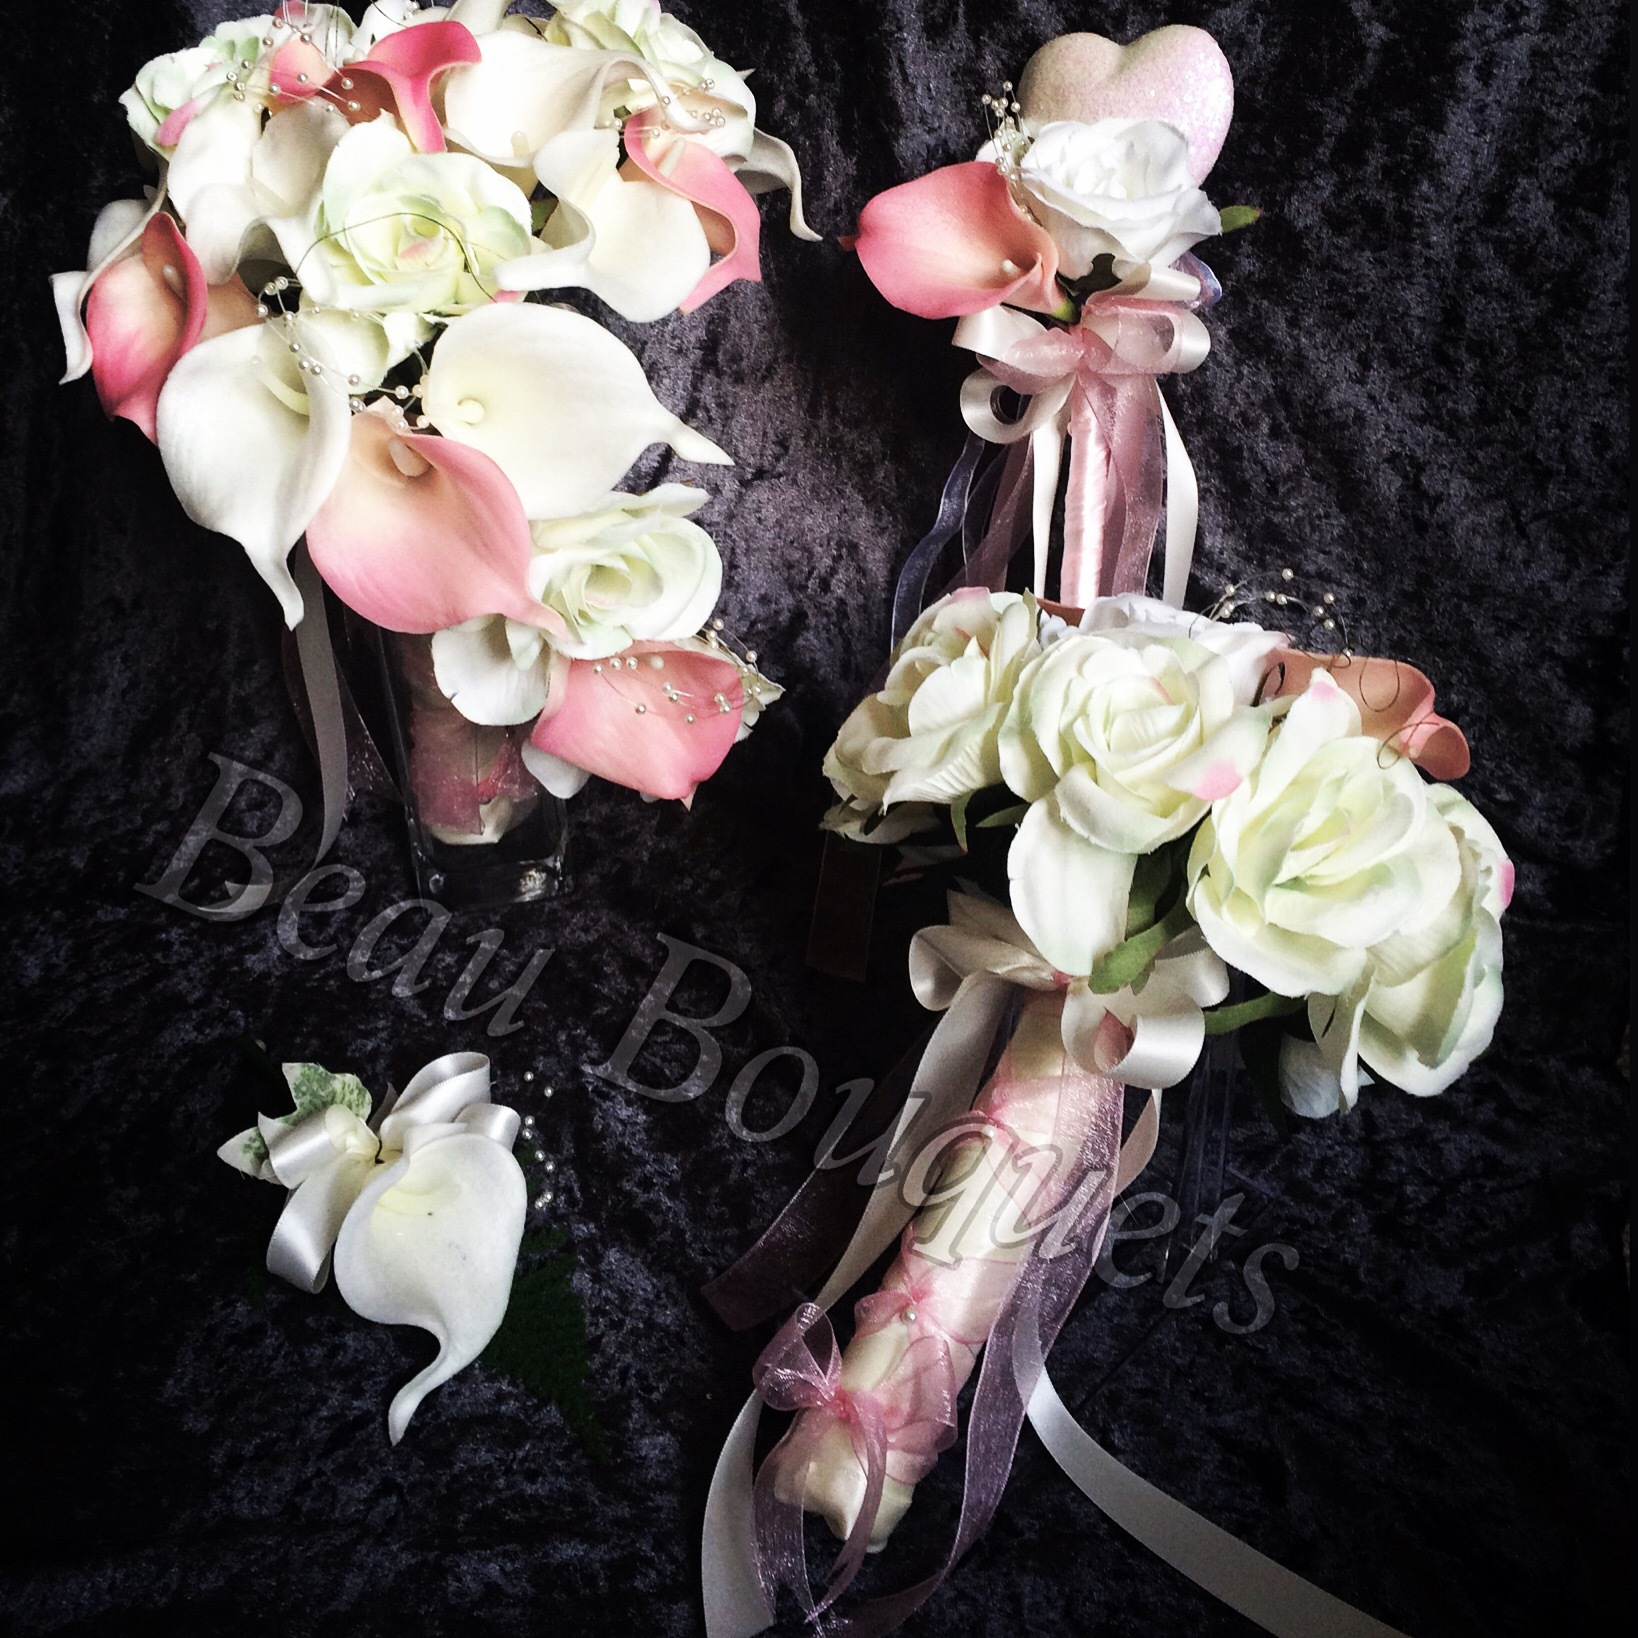 Teardrop Twist Real touch Calla Lily & Rose Loveheart Bride Bouquet £48